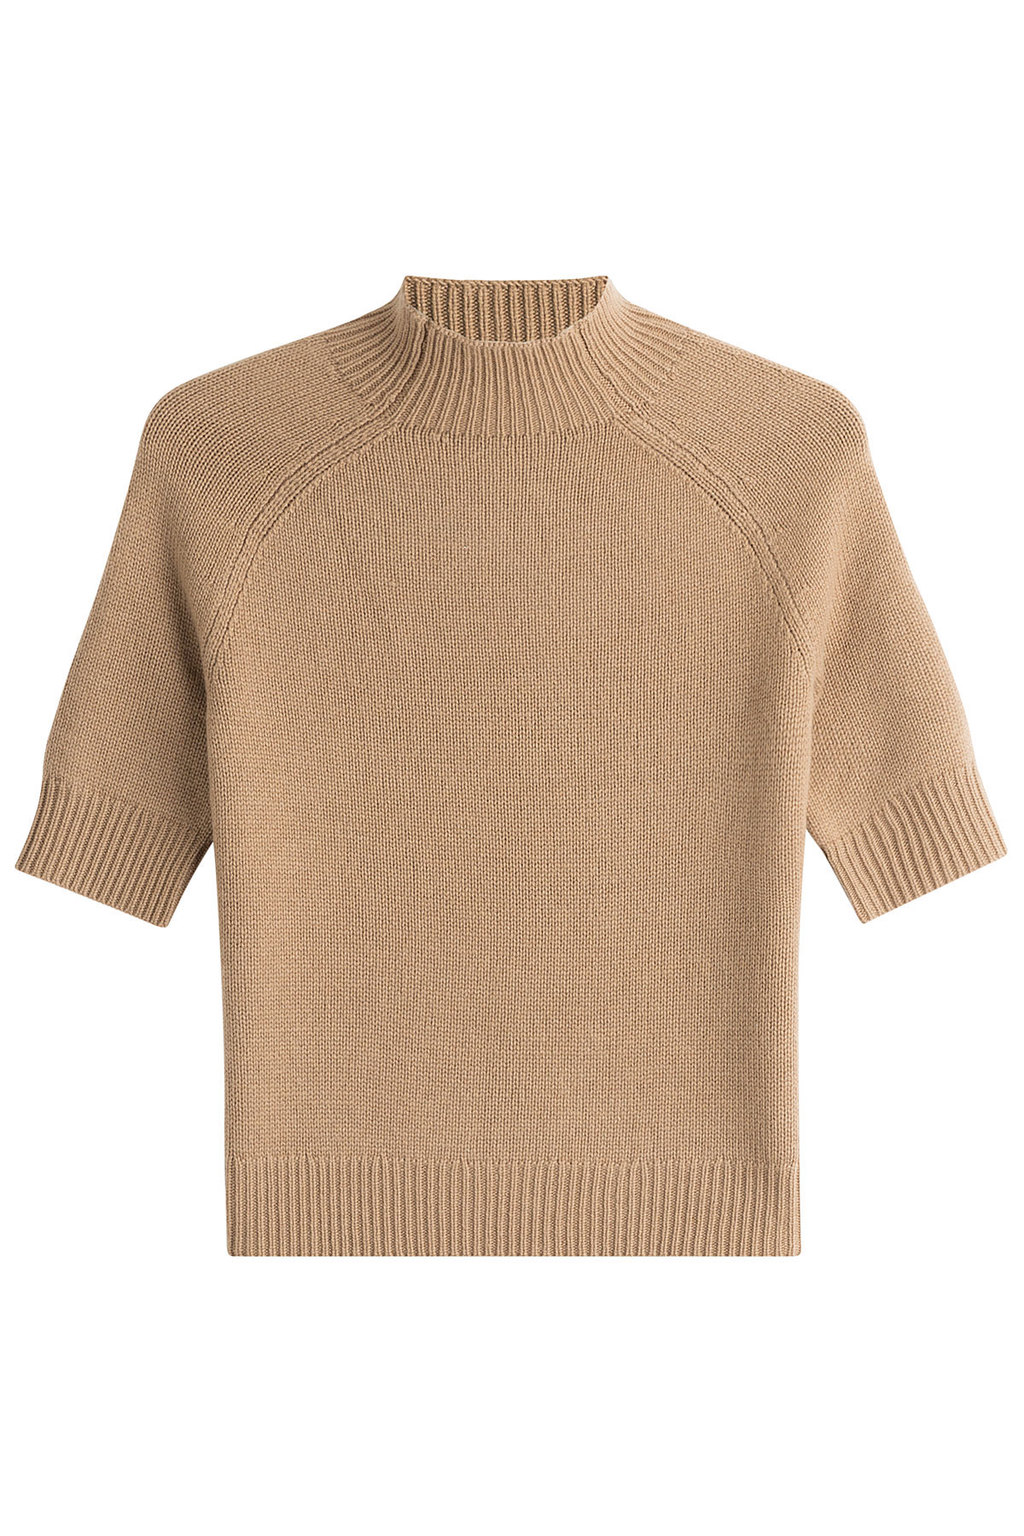 Cashmere Top With Short Sleeves Beige - pattern: plain; neckline: high neck; predominant colour: camel; occasions: casual; length: standard; style: top; fit: straight cut; fibres: cashmere - 100%; sleeve length: short sleeve; sleeve style: standard; texture group: knits/crochet; pattern type: knitted - fine stitch; season: a/w 2016